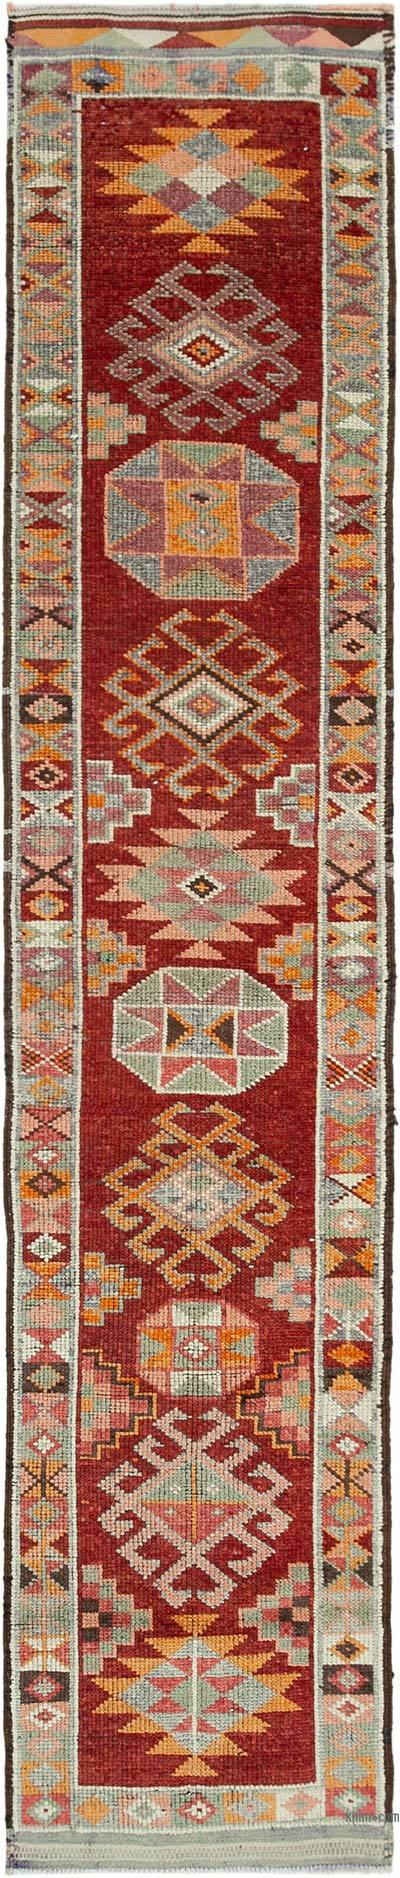 "Vintage Turkish Runner Rug - 2' 7"" x 12' 7"" (31 in. x 151 in.)"